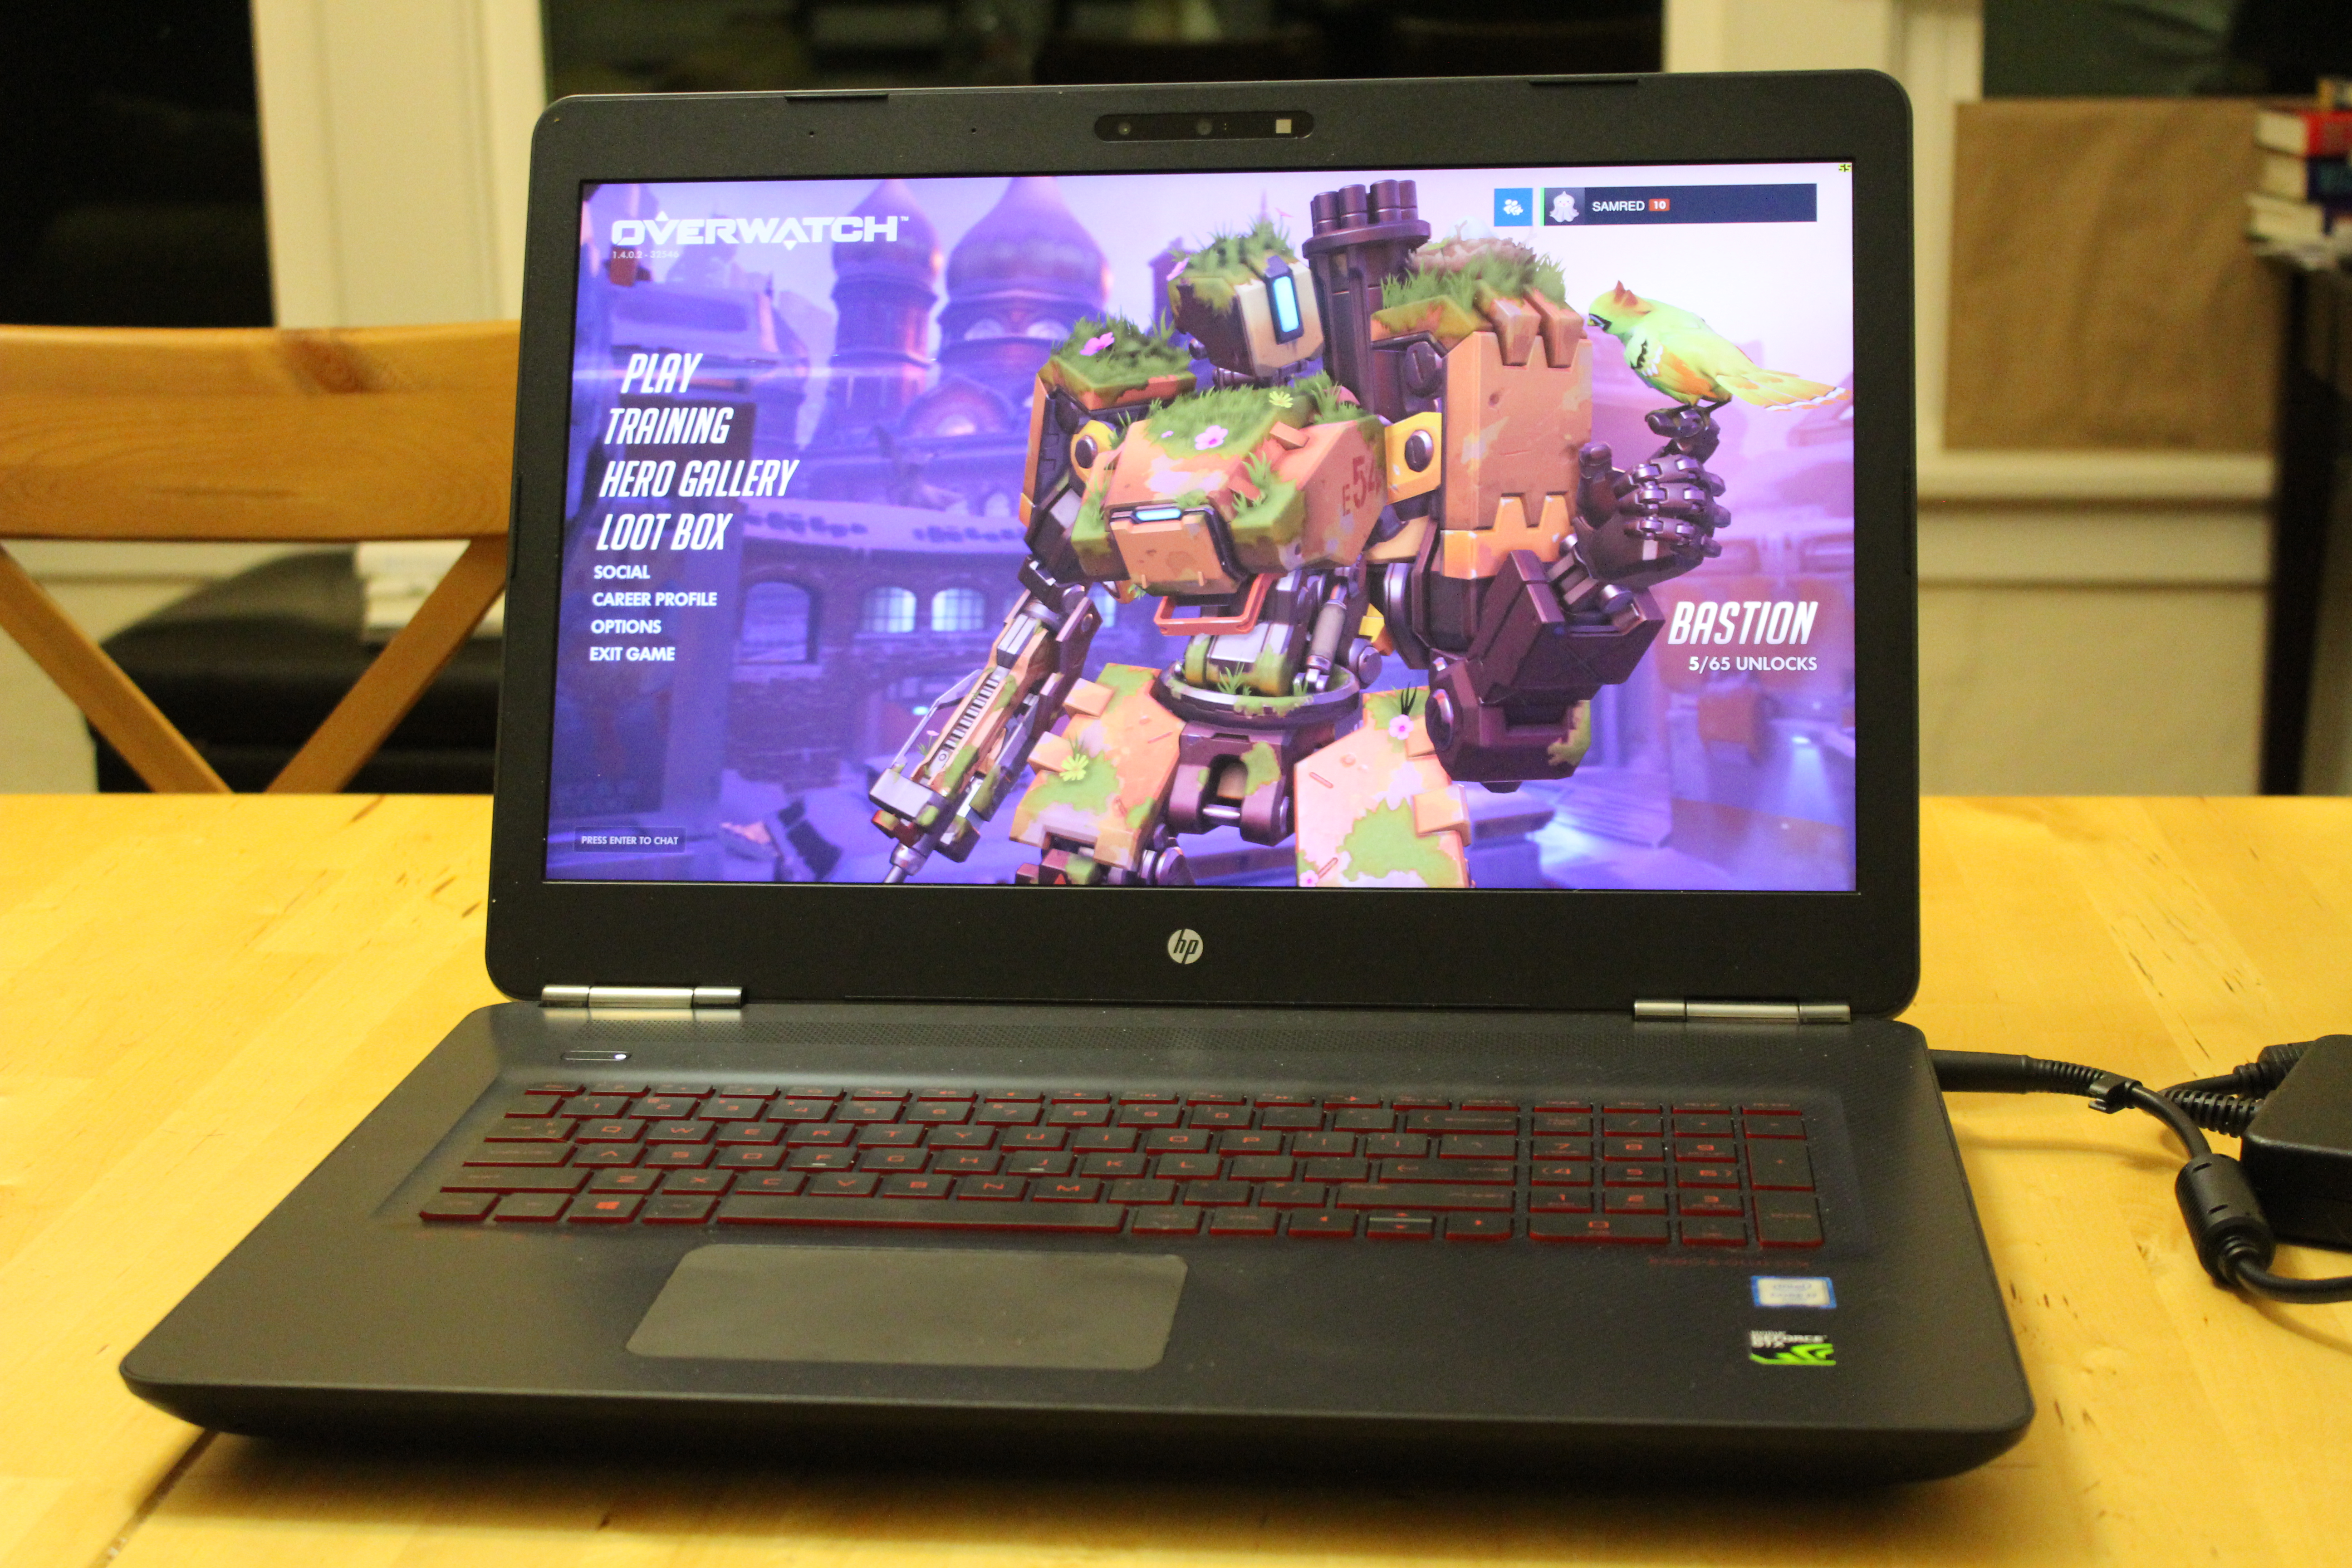 HP Omen 17: An affordable gaming-caliber laptop almost worth